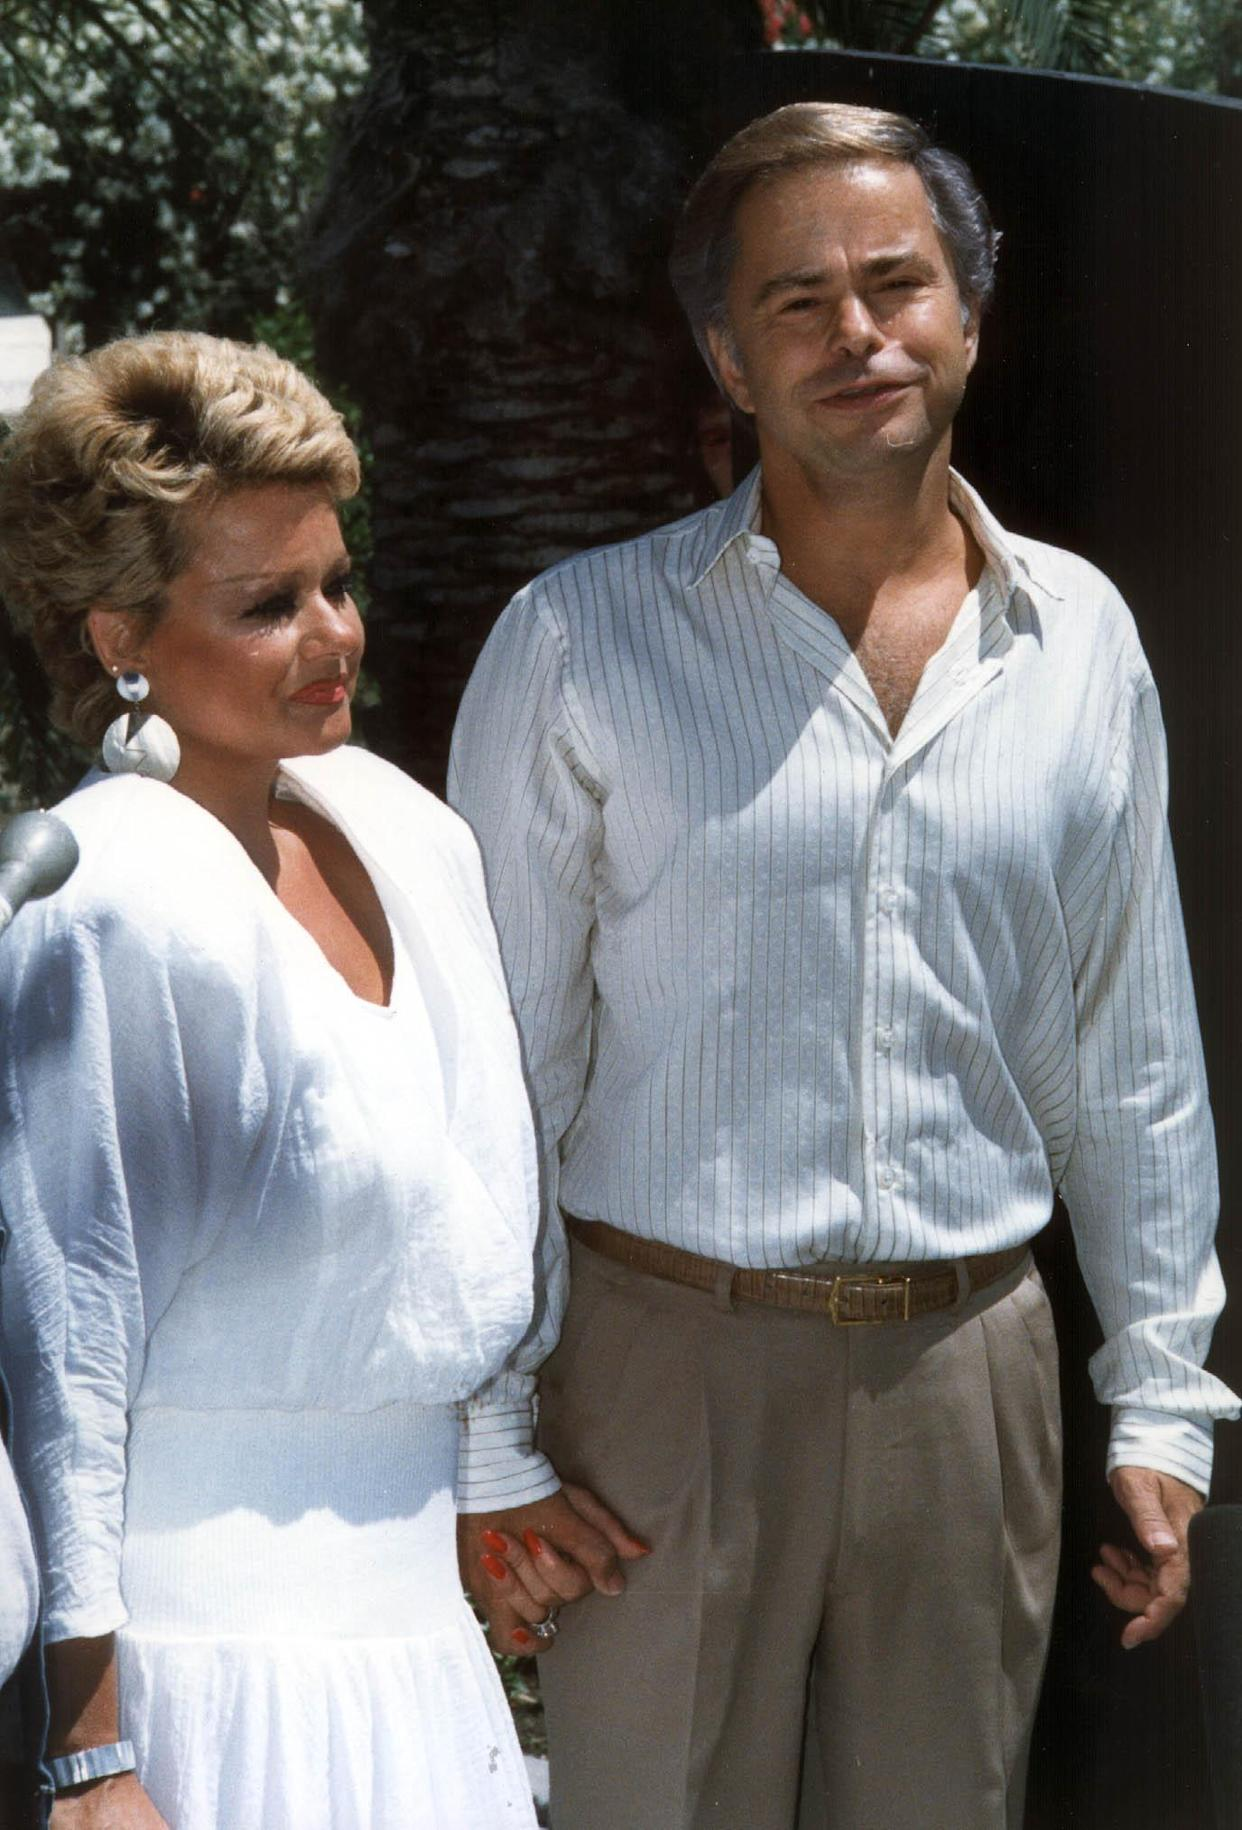 PALM SPRINGS, CA - MAY 1:  Reverend Jim Bakker and his wife Tammy Faye Bakker are shown at their first press conference 01 May 1987, Palm Springs, CA, since Bakker was forced out of PTL church.  (Photo credit should read SCOTT MILIMAN/AFP via Getty Images)